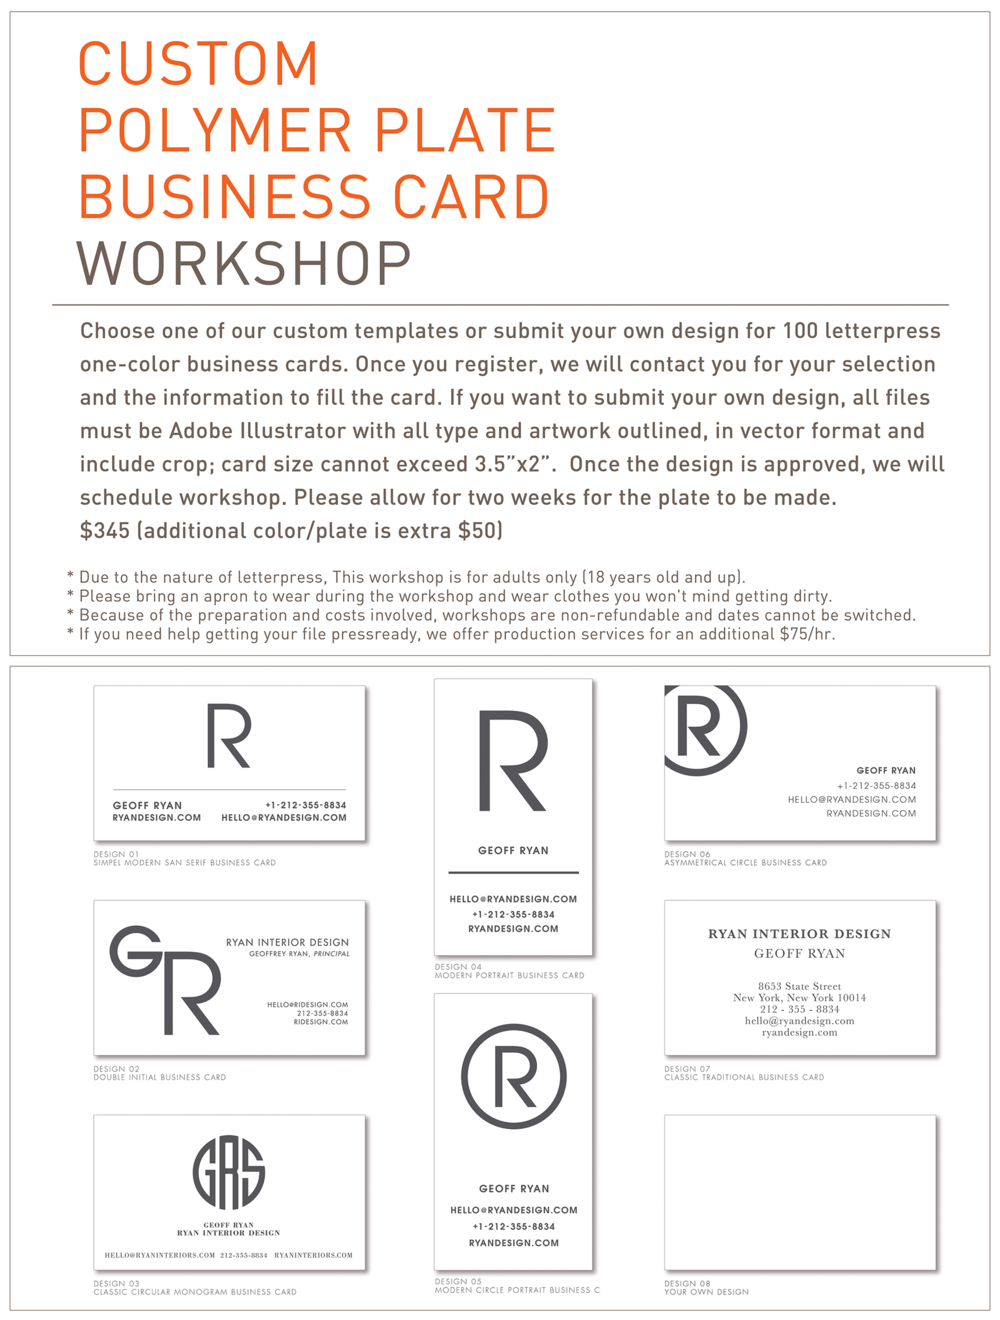 CUSTOMBusinessCardDescrip_2017_08_03_low.png